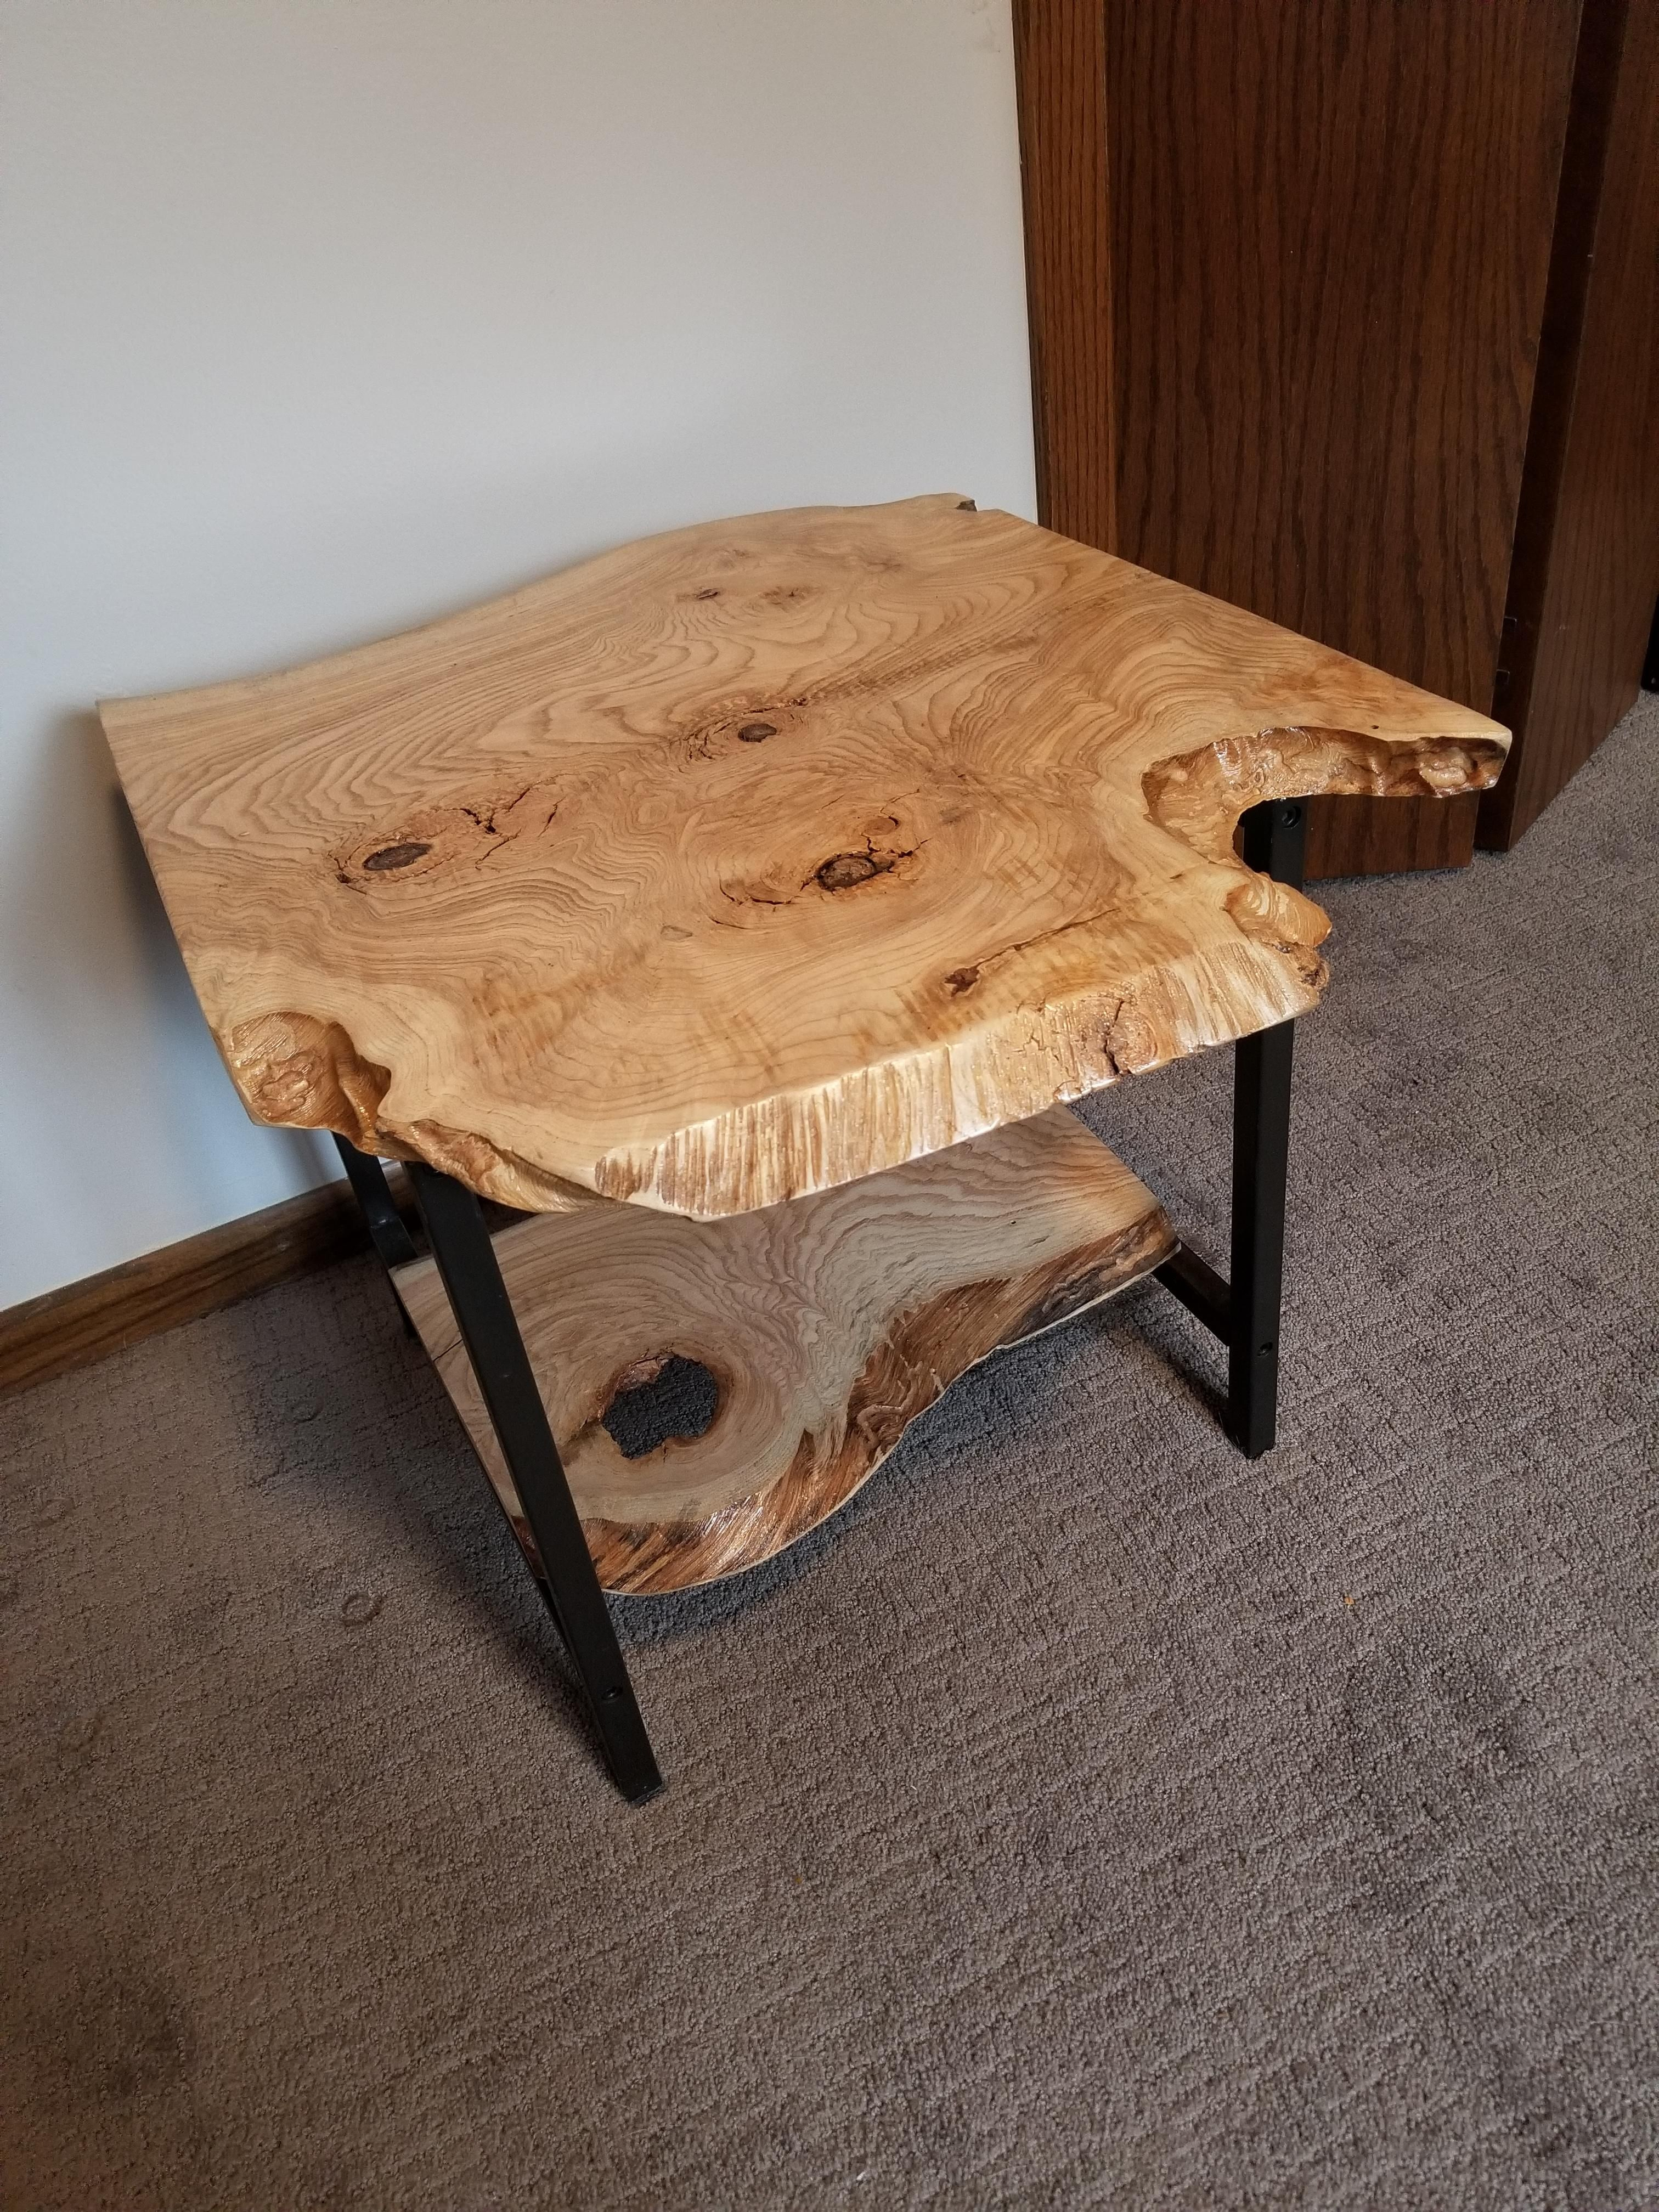 Ash nightstand I made What do you guys think Personally my